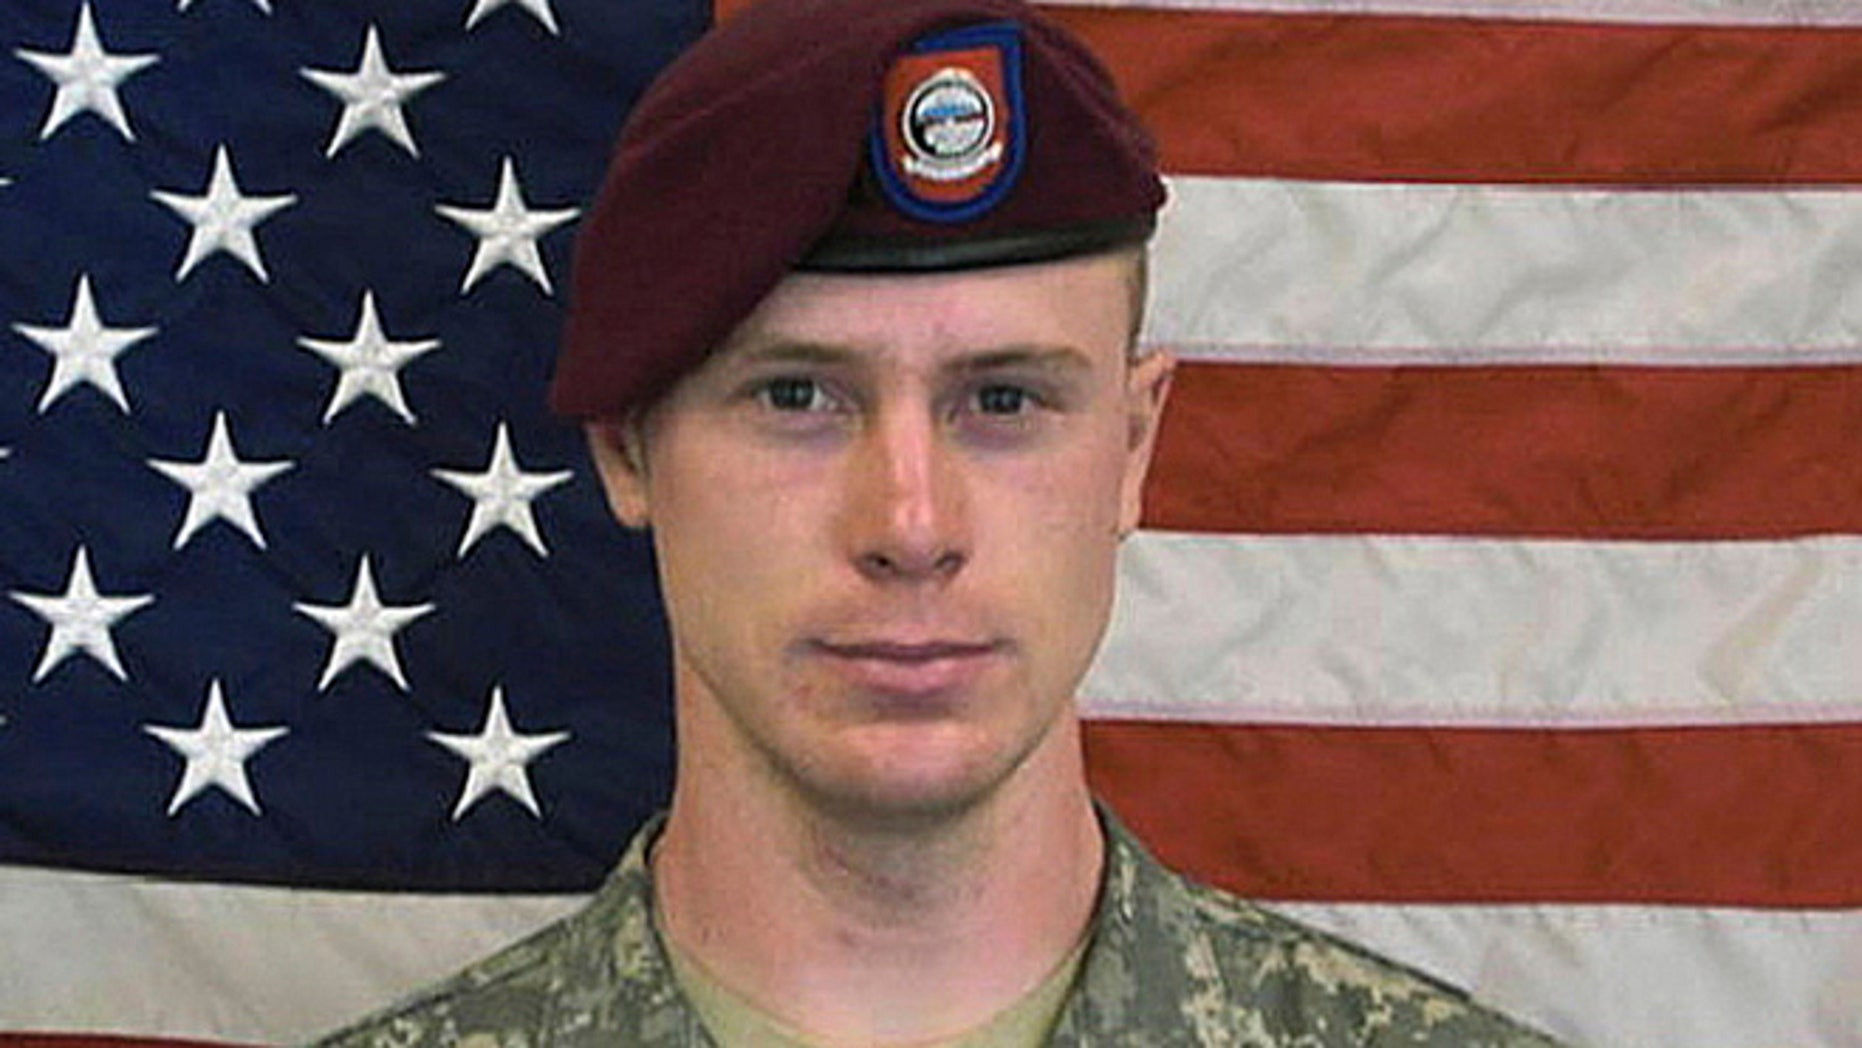 This undated image provided by the U.S. Army shows Sgt. Bowe Bergdahl. (US Army)